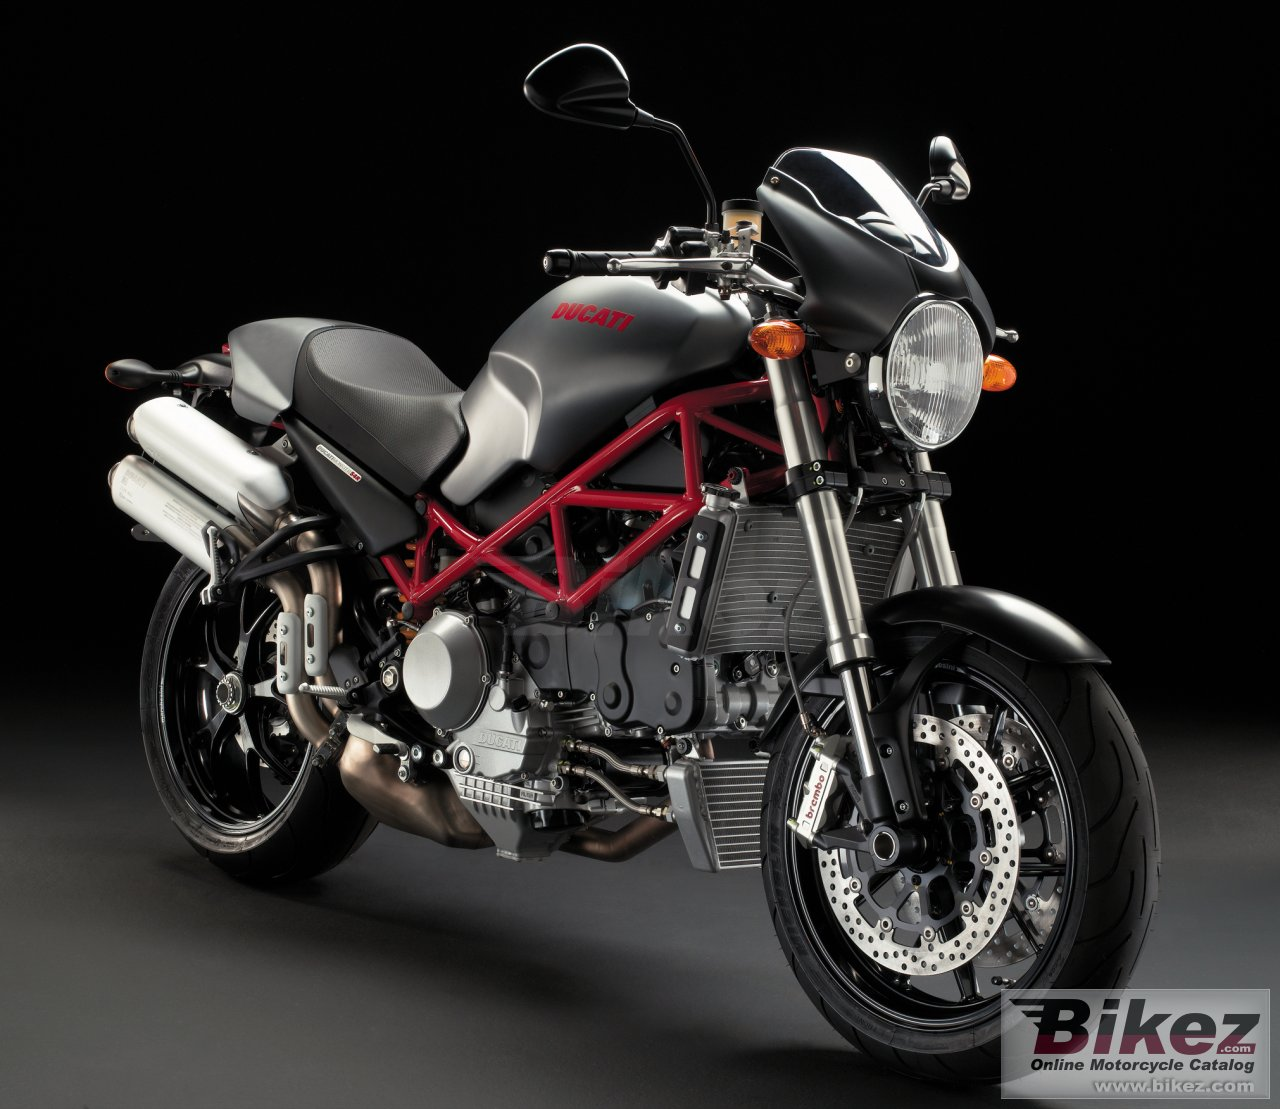 Big Ducati monster s4r testastretta picture and wallpaper from Bikez.com